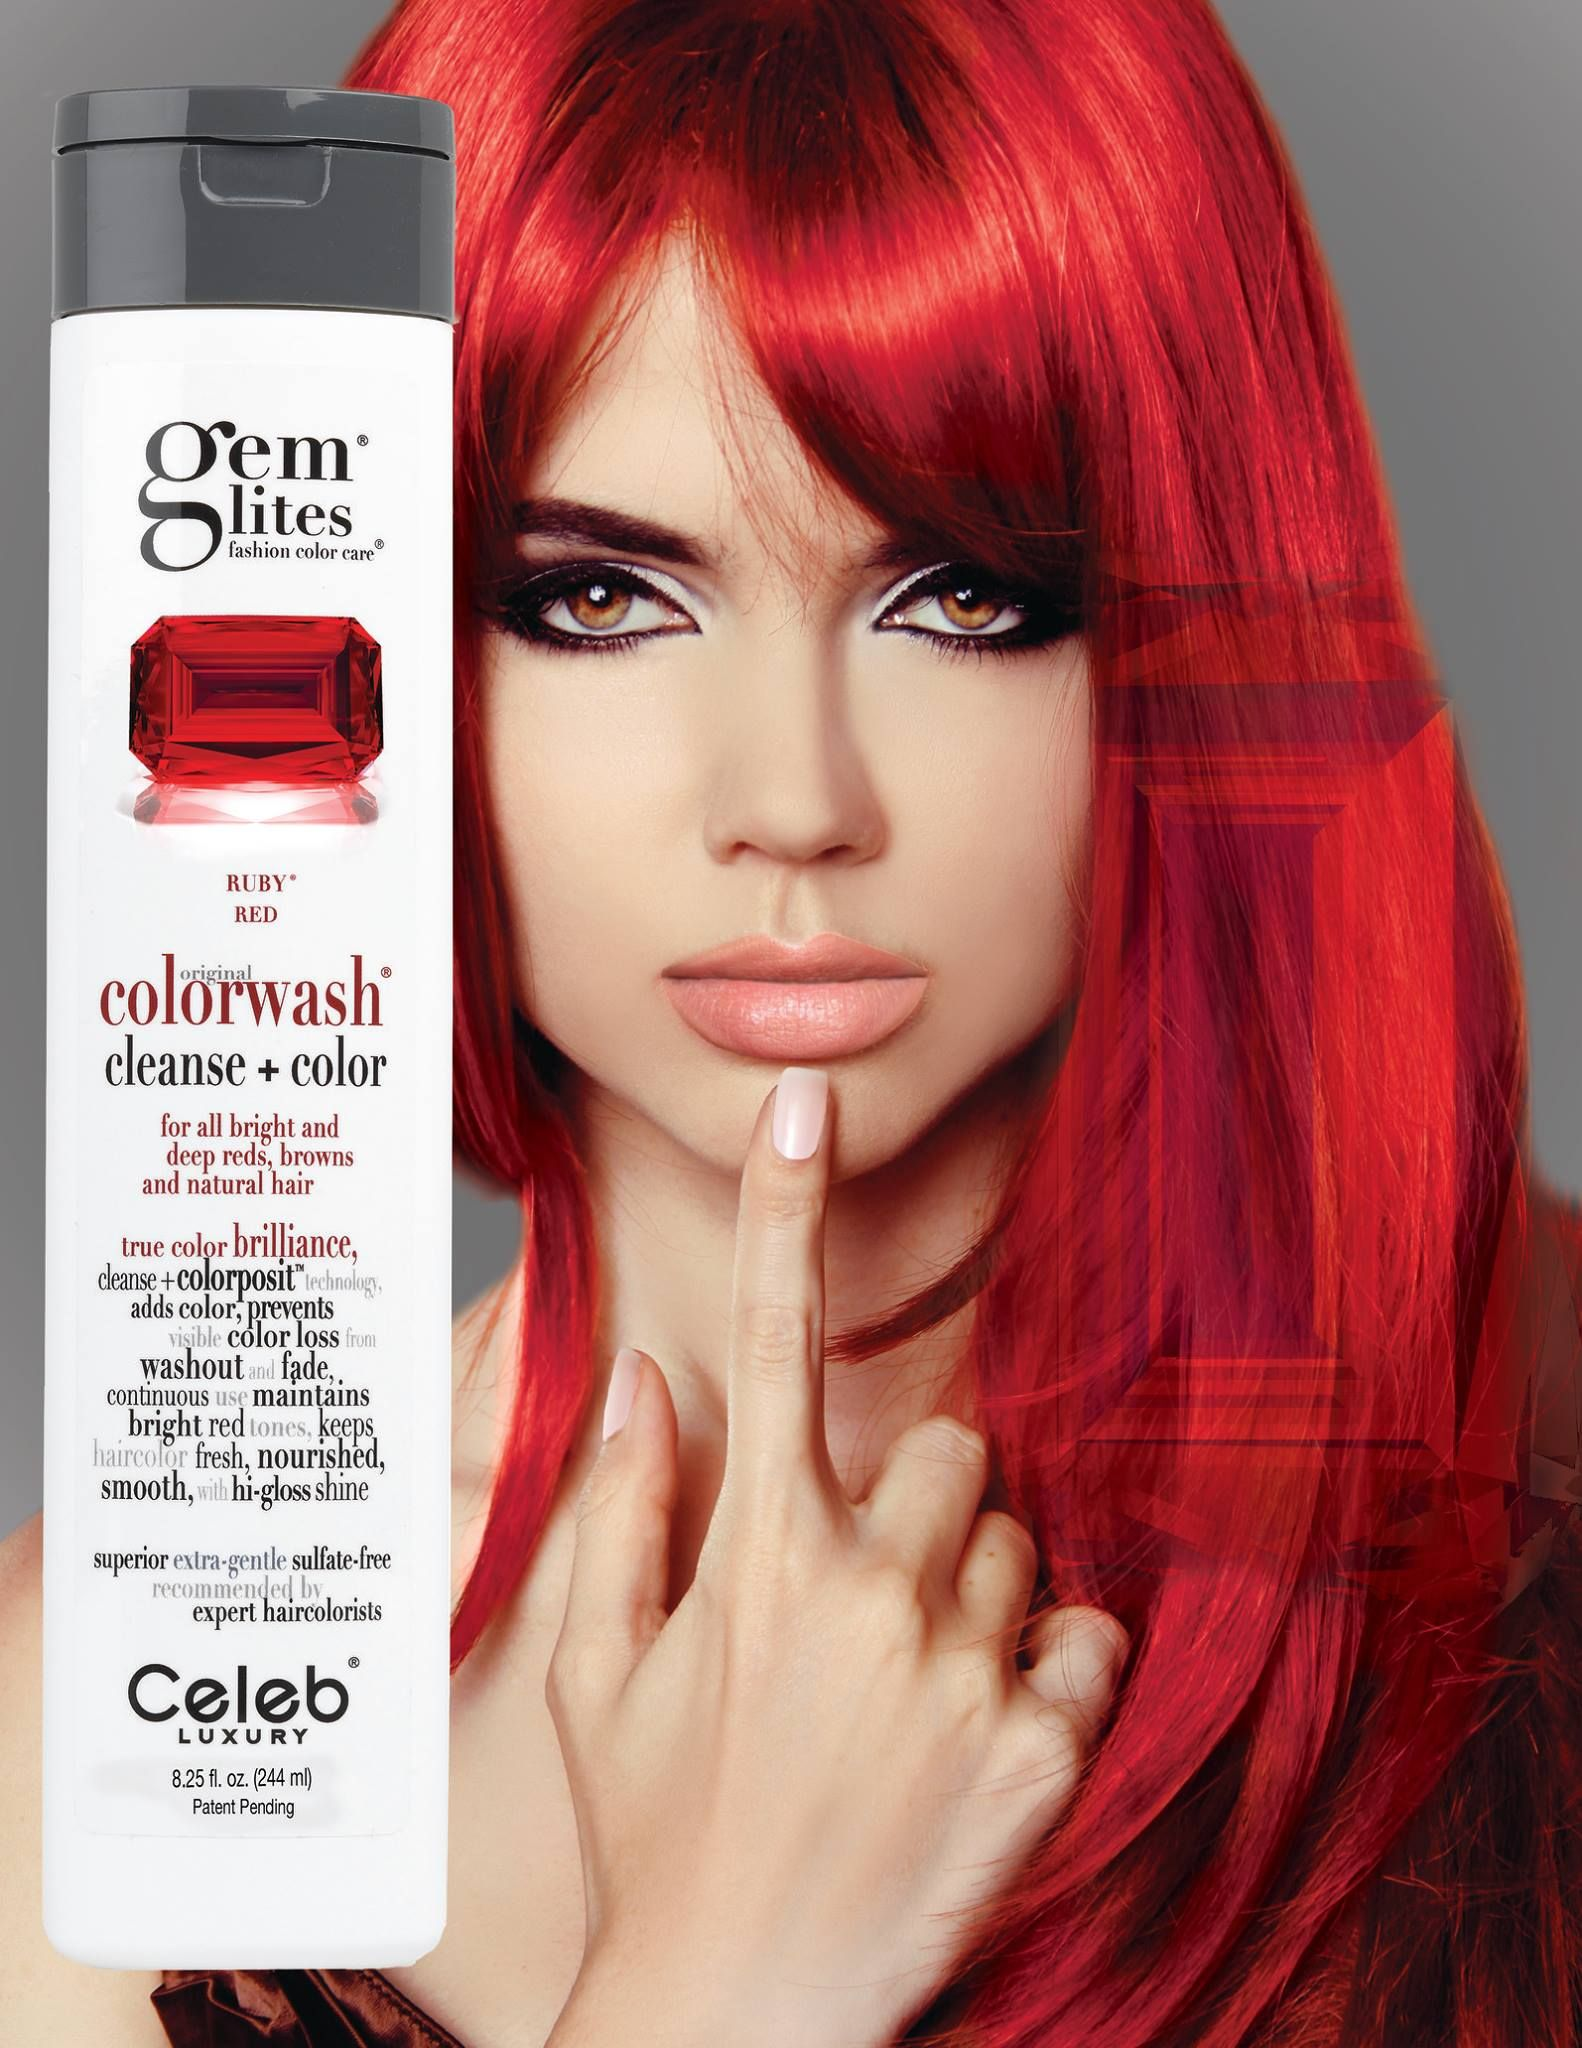 Fight The Fade With Celeb Luxury Colorwash Shampoos Each Wash Will Cleanse Your Hair And Replenish Your Colo Beauty Hair Color Red Hair Color Light Brown Hair